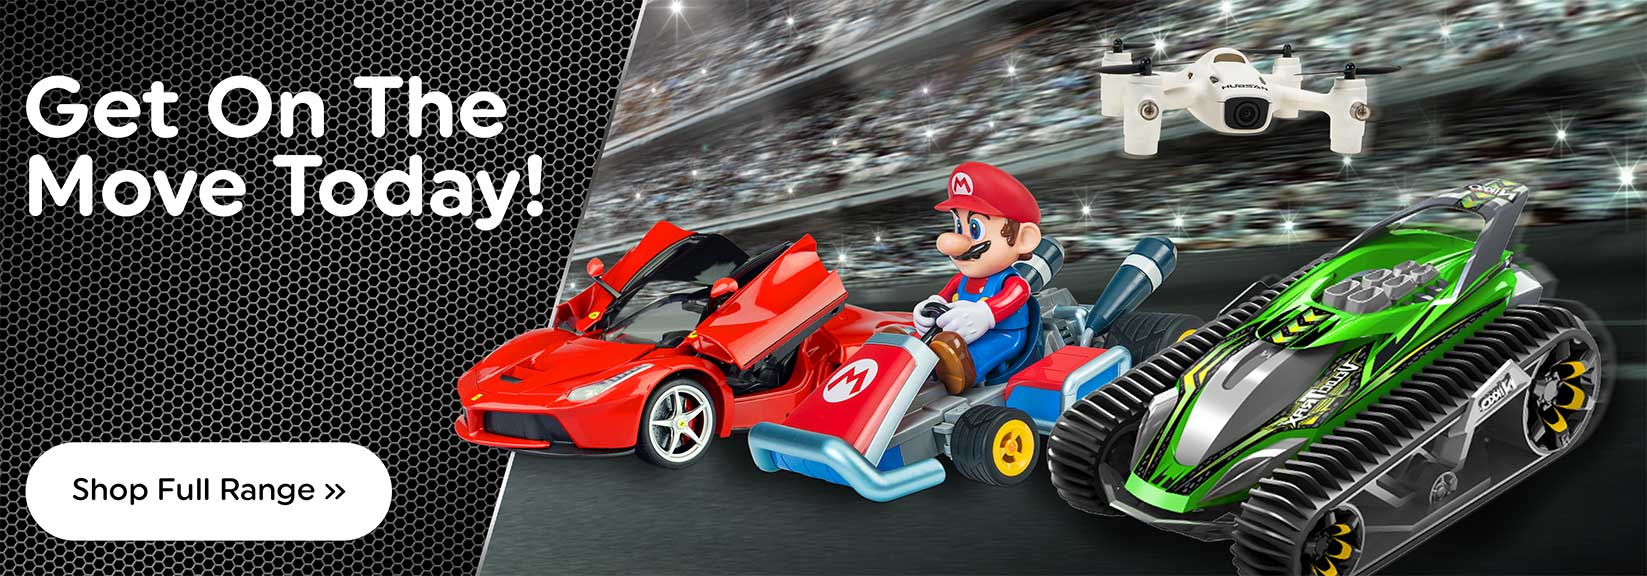 Full Range of Radio Control Cars and Helicopters At Smyths Toys Superstores!